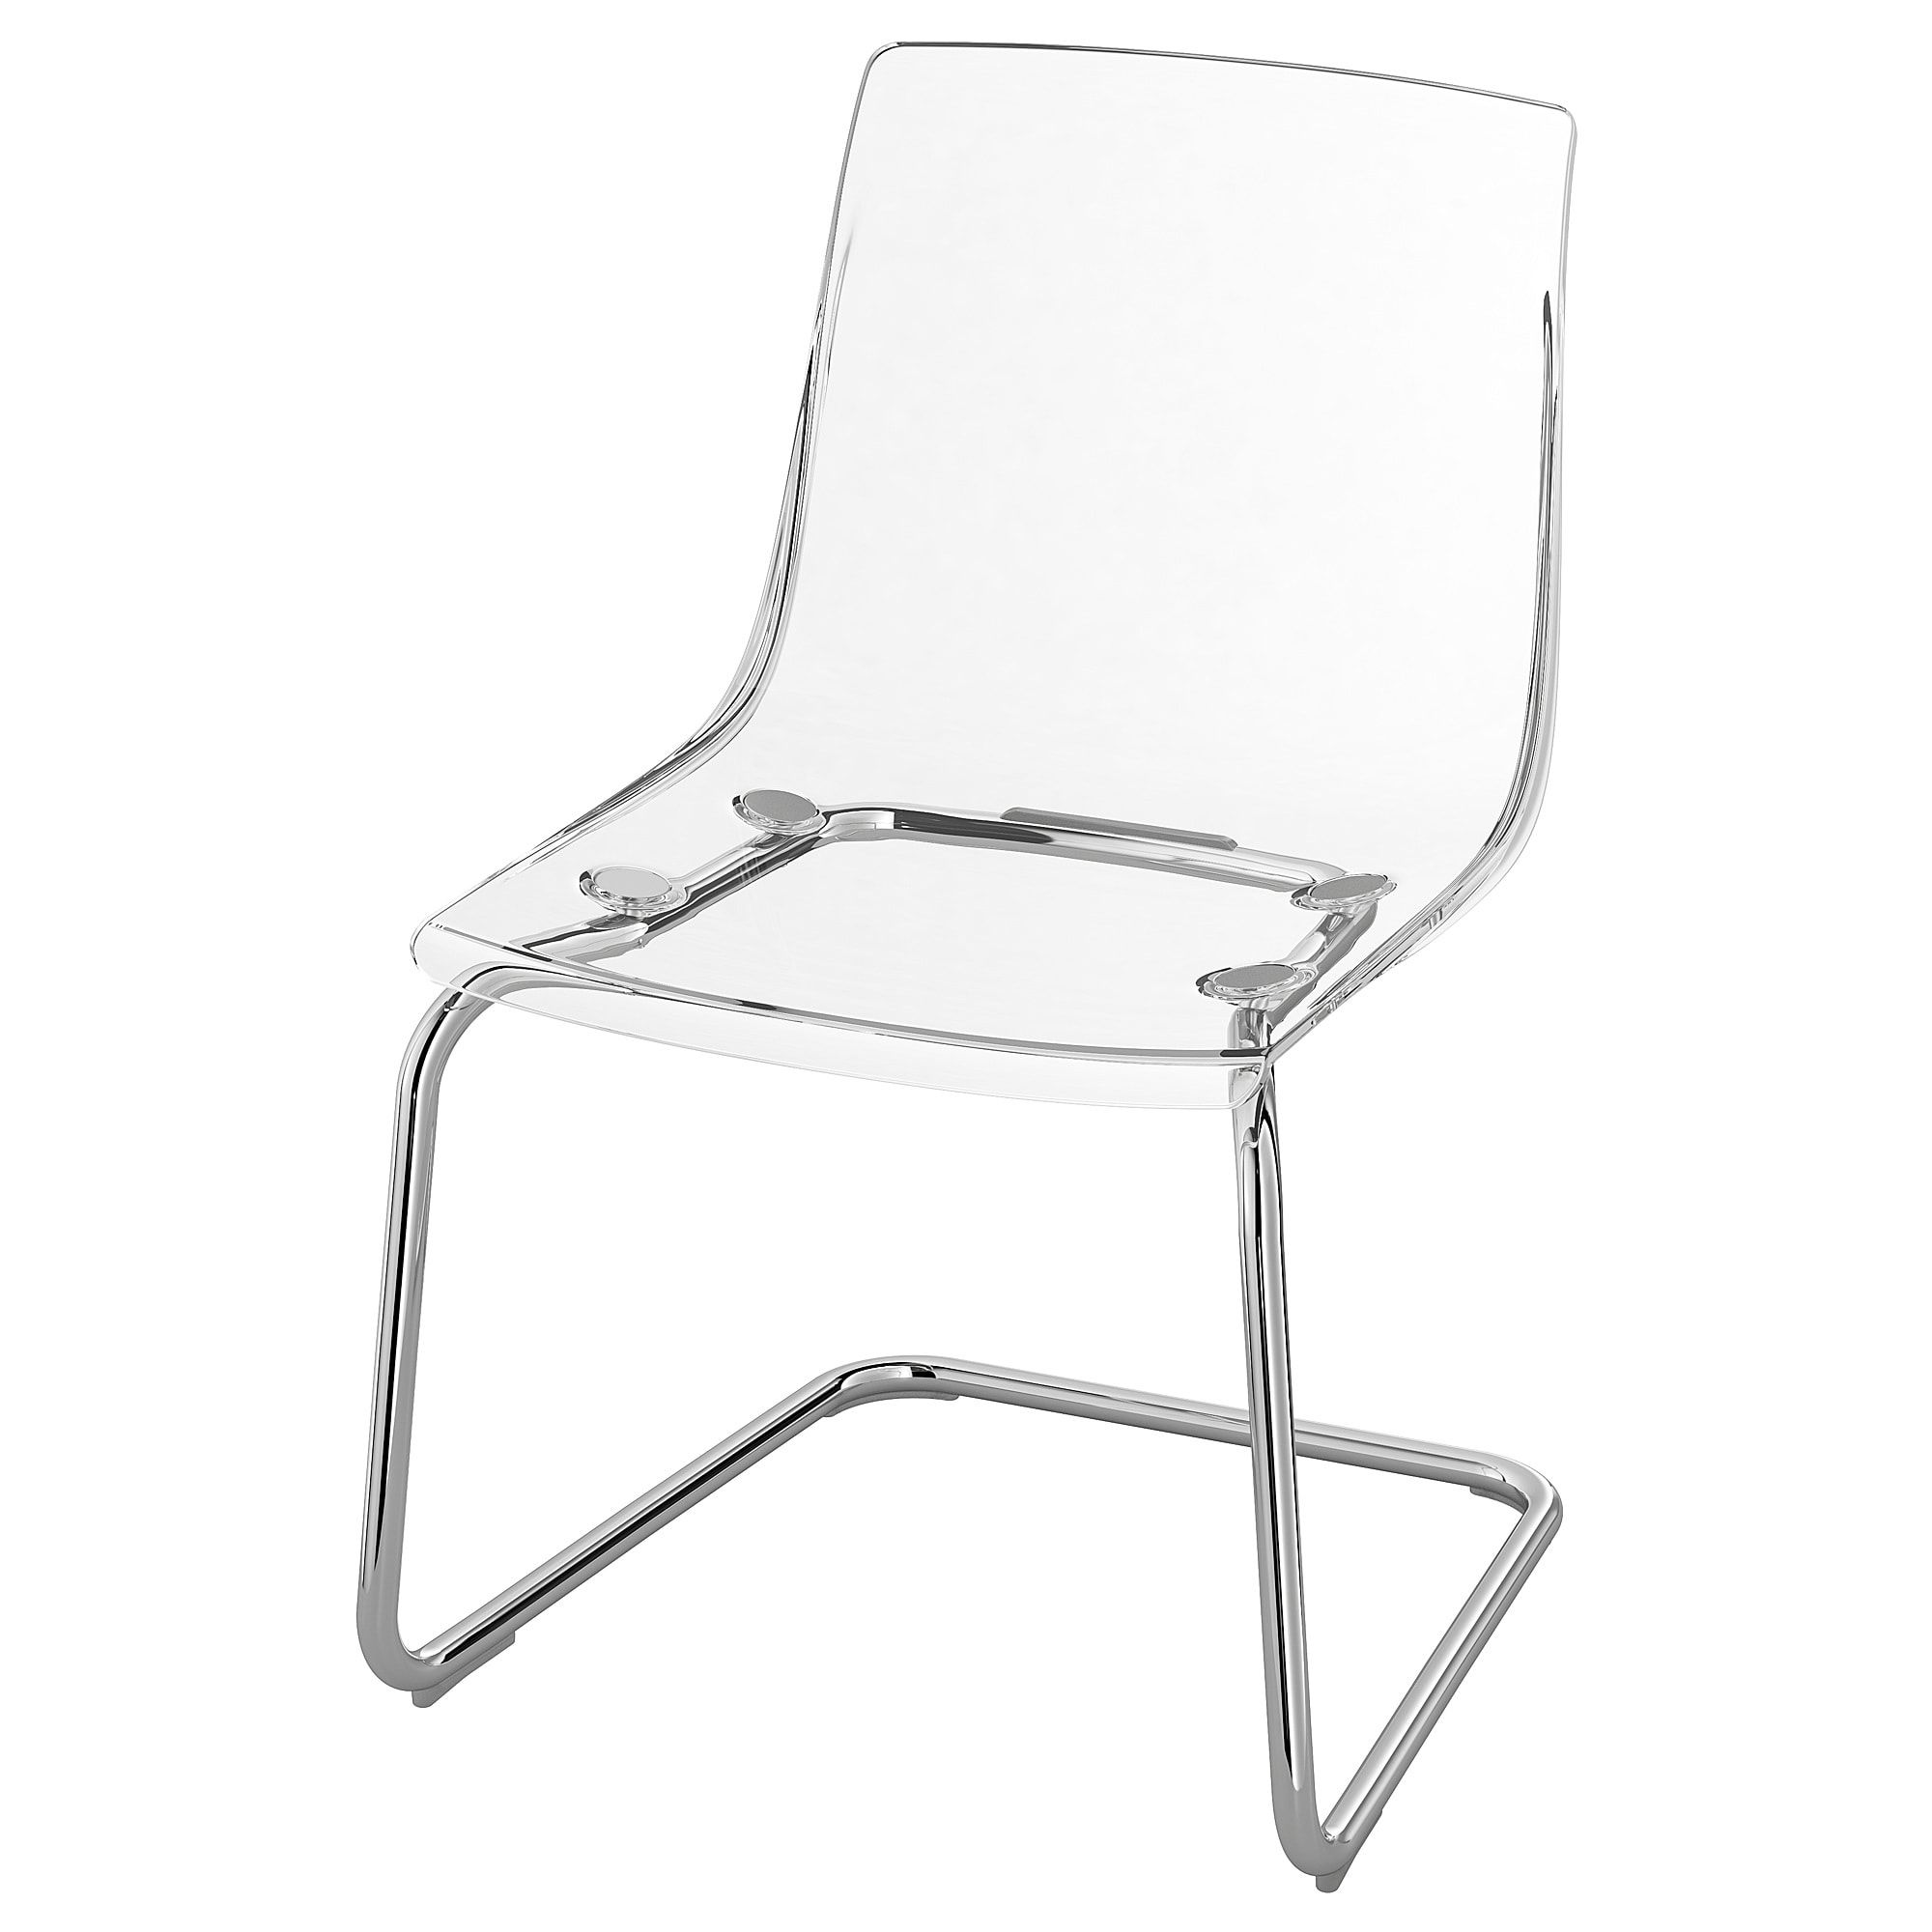 Use For Desk Chairs Tobias Chair Clear Chrome Plated Ikea Transparent Chair Clear Chairs Ikea Clear Chair